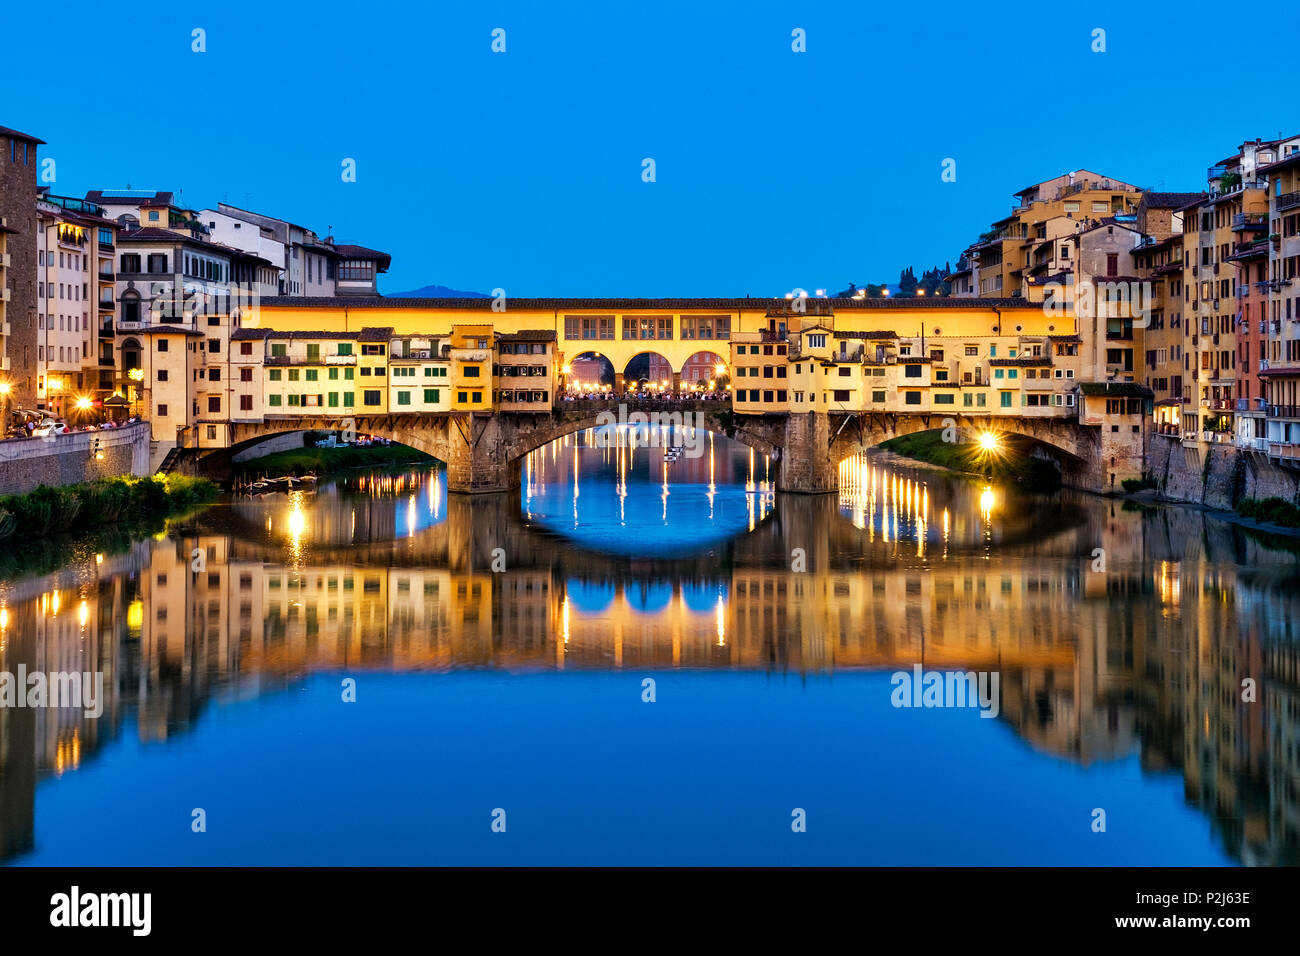 Downriver view of Ponte Vecchio, Florence, Italy - Stock Image